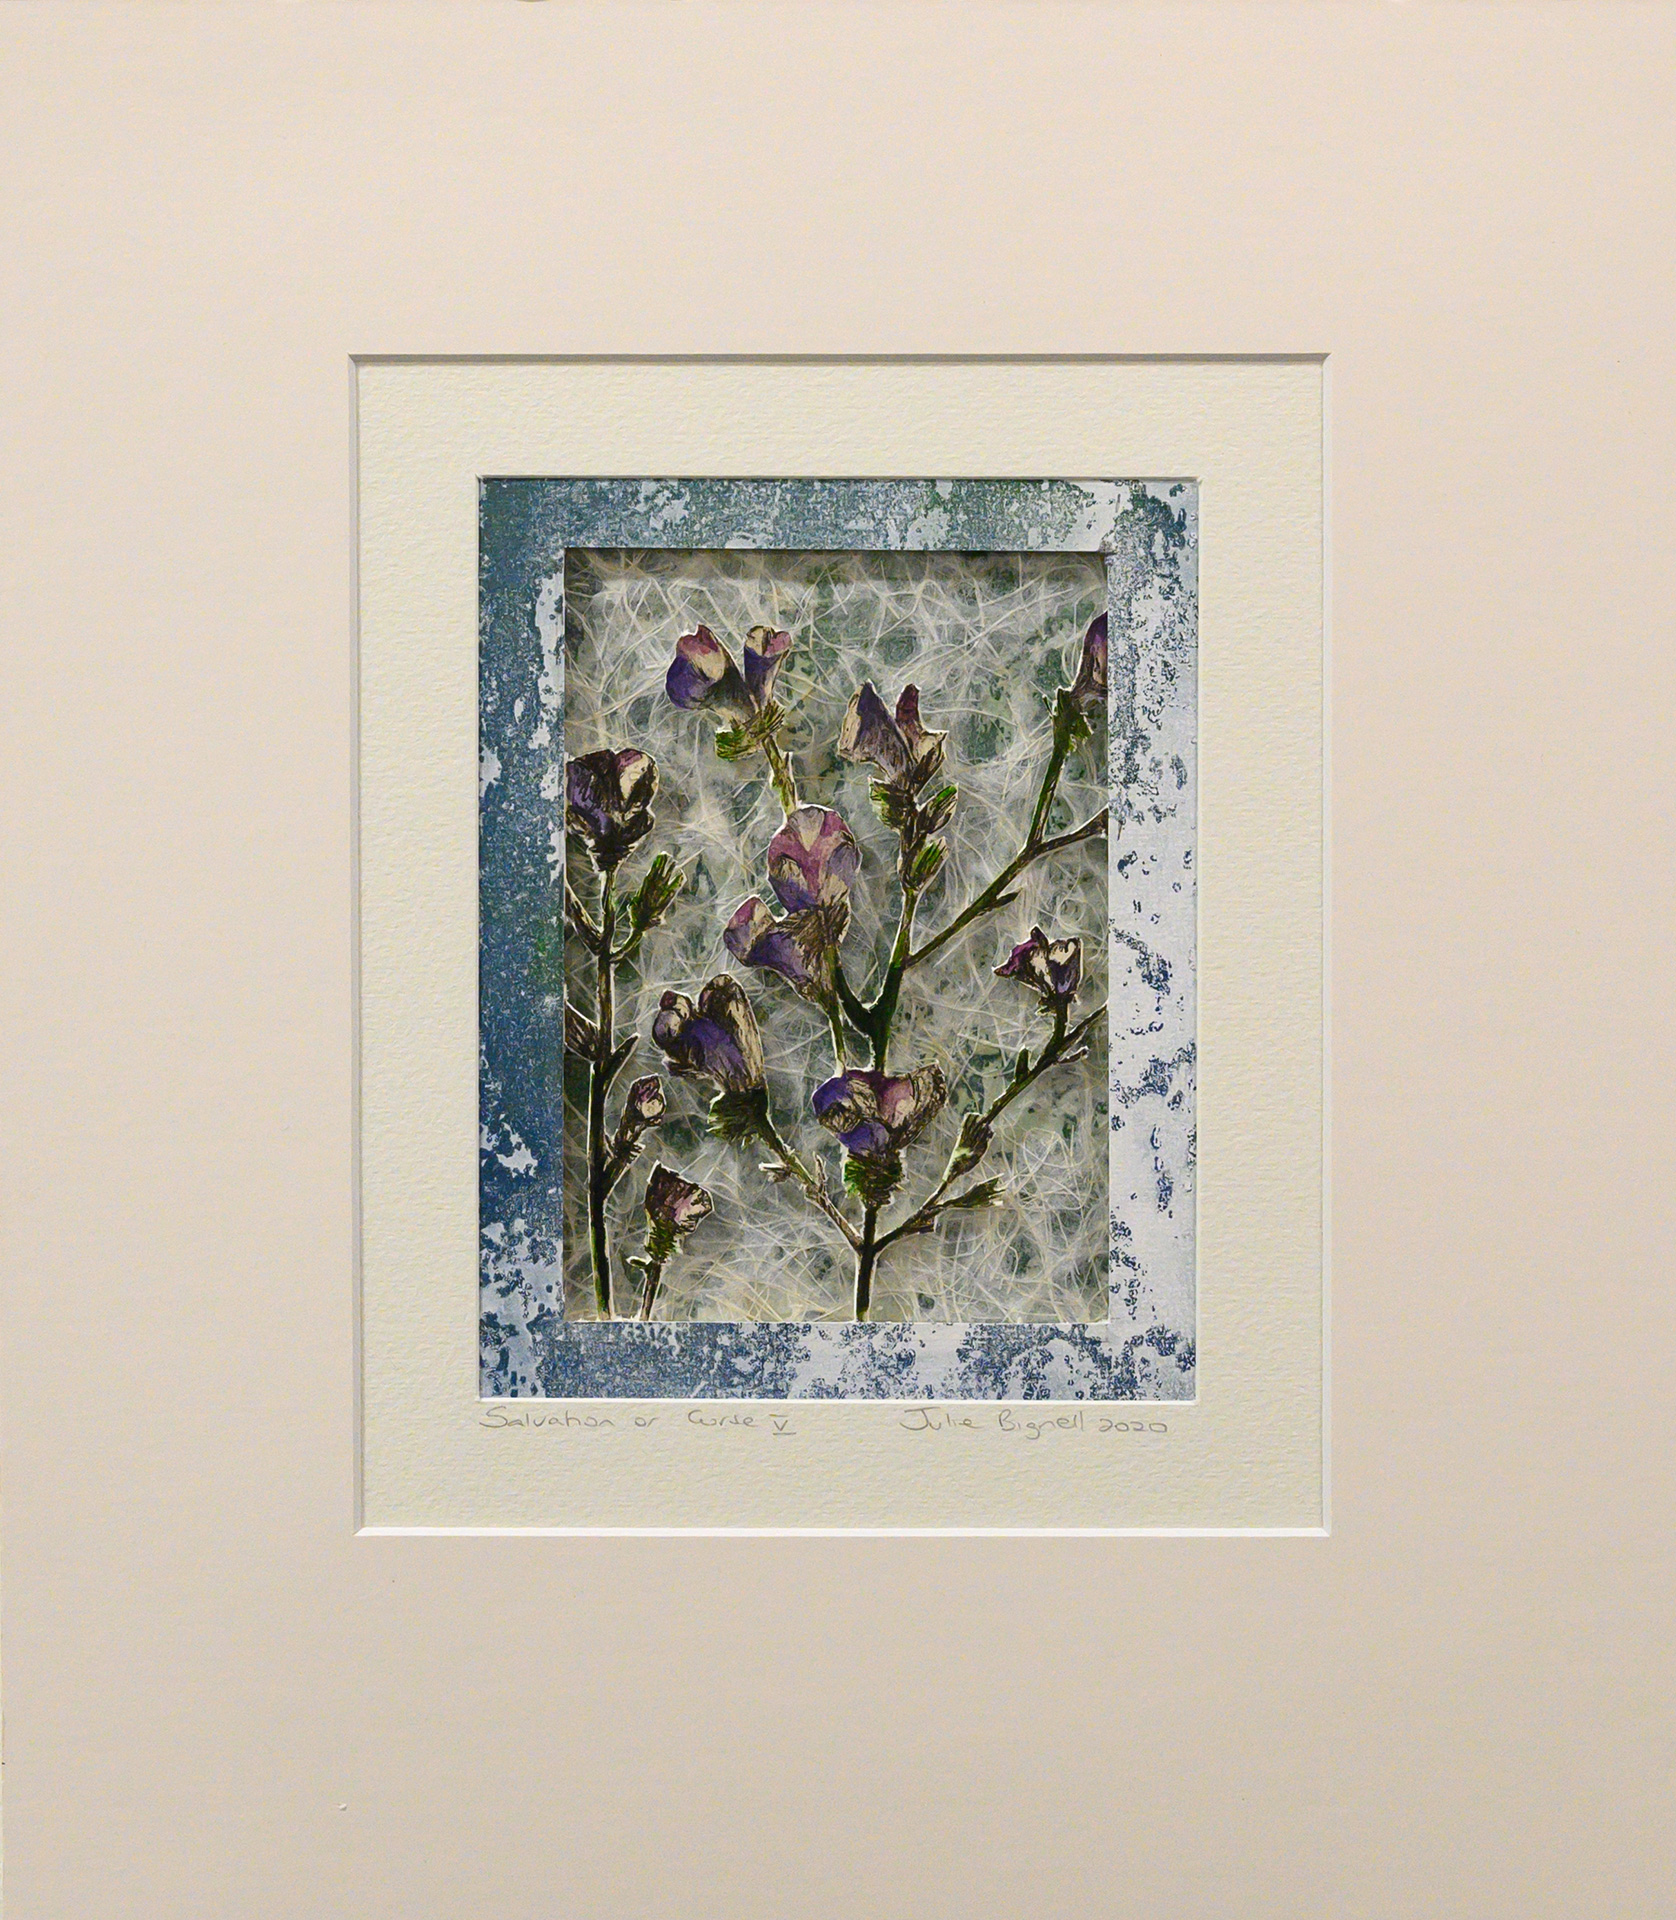 Unframed artwork by Julie Bignell of purple flowers cut out in the foreground with textured cream & dark green coloured paper in the background with a blue printed border